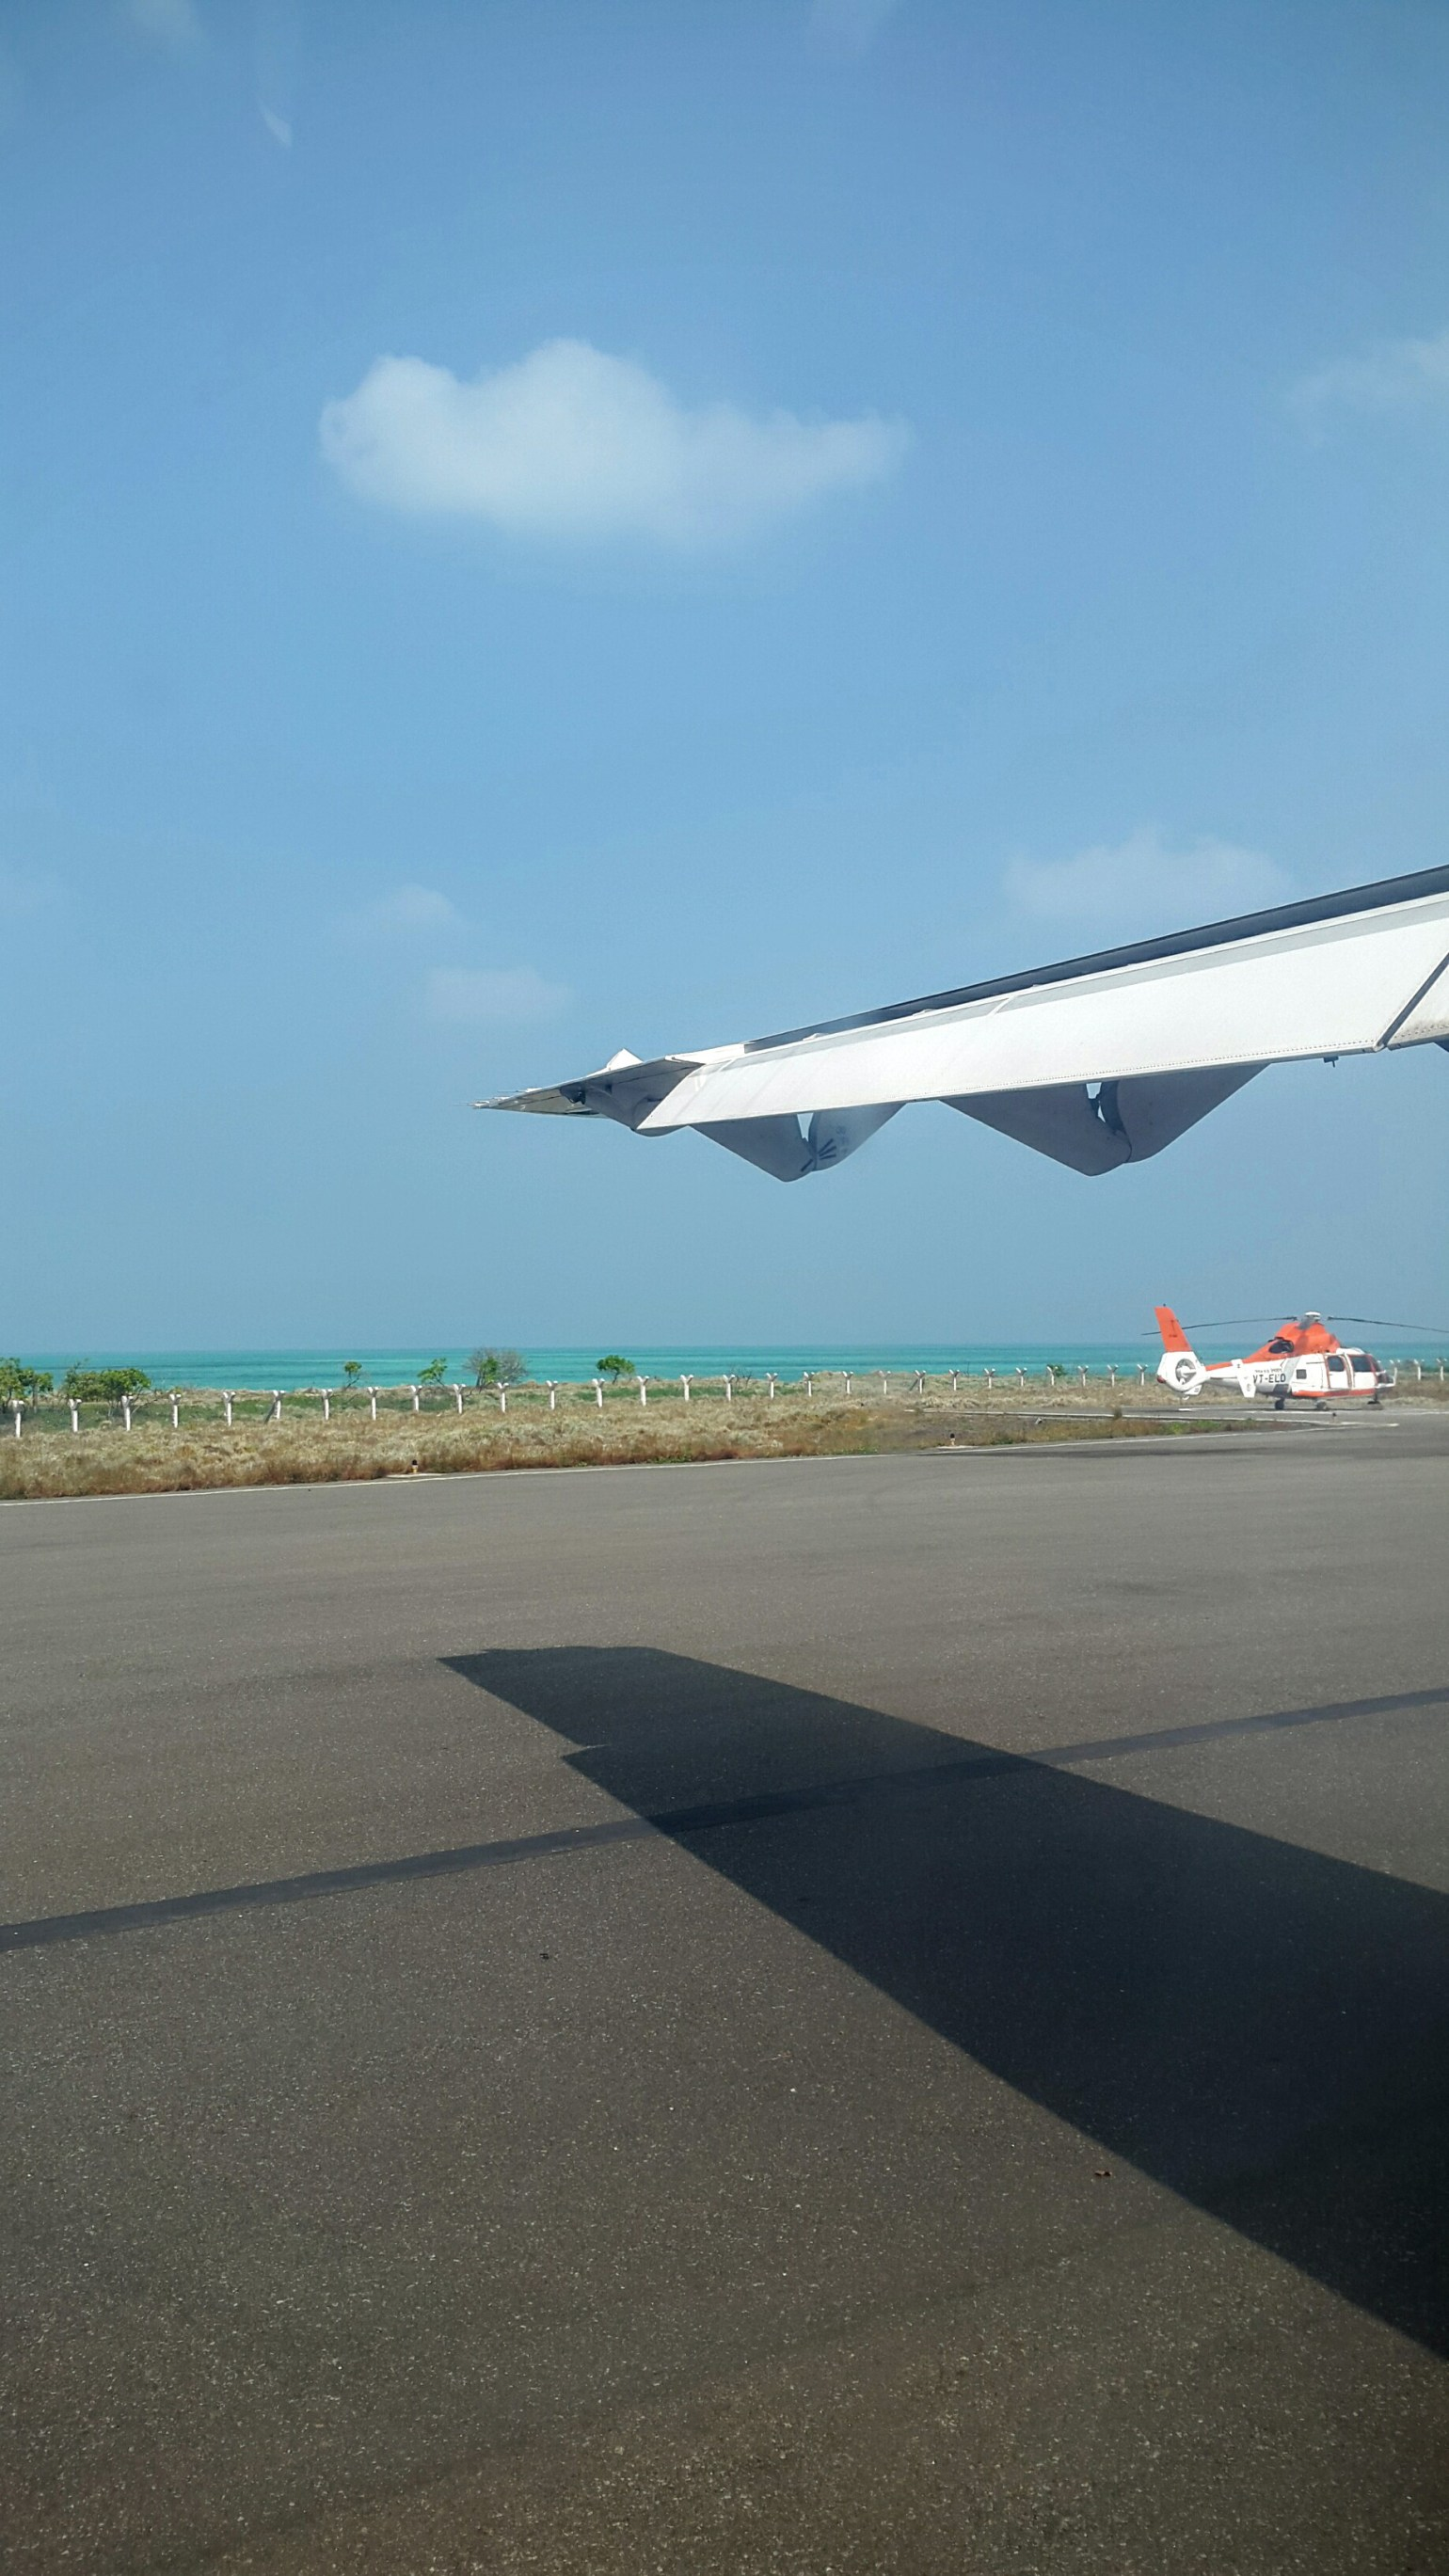 Agatti Runway - How to plan your Lakshadweep trip